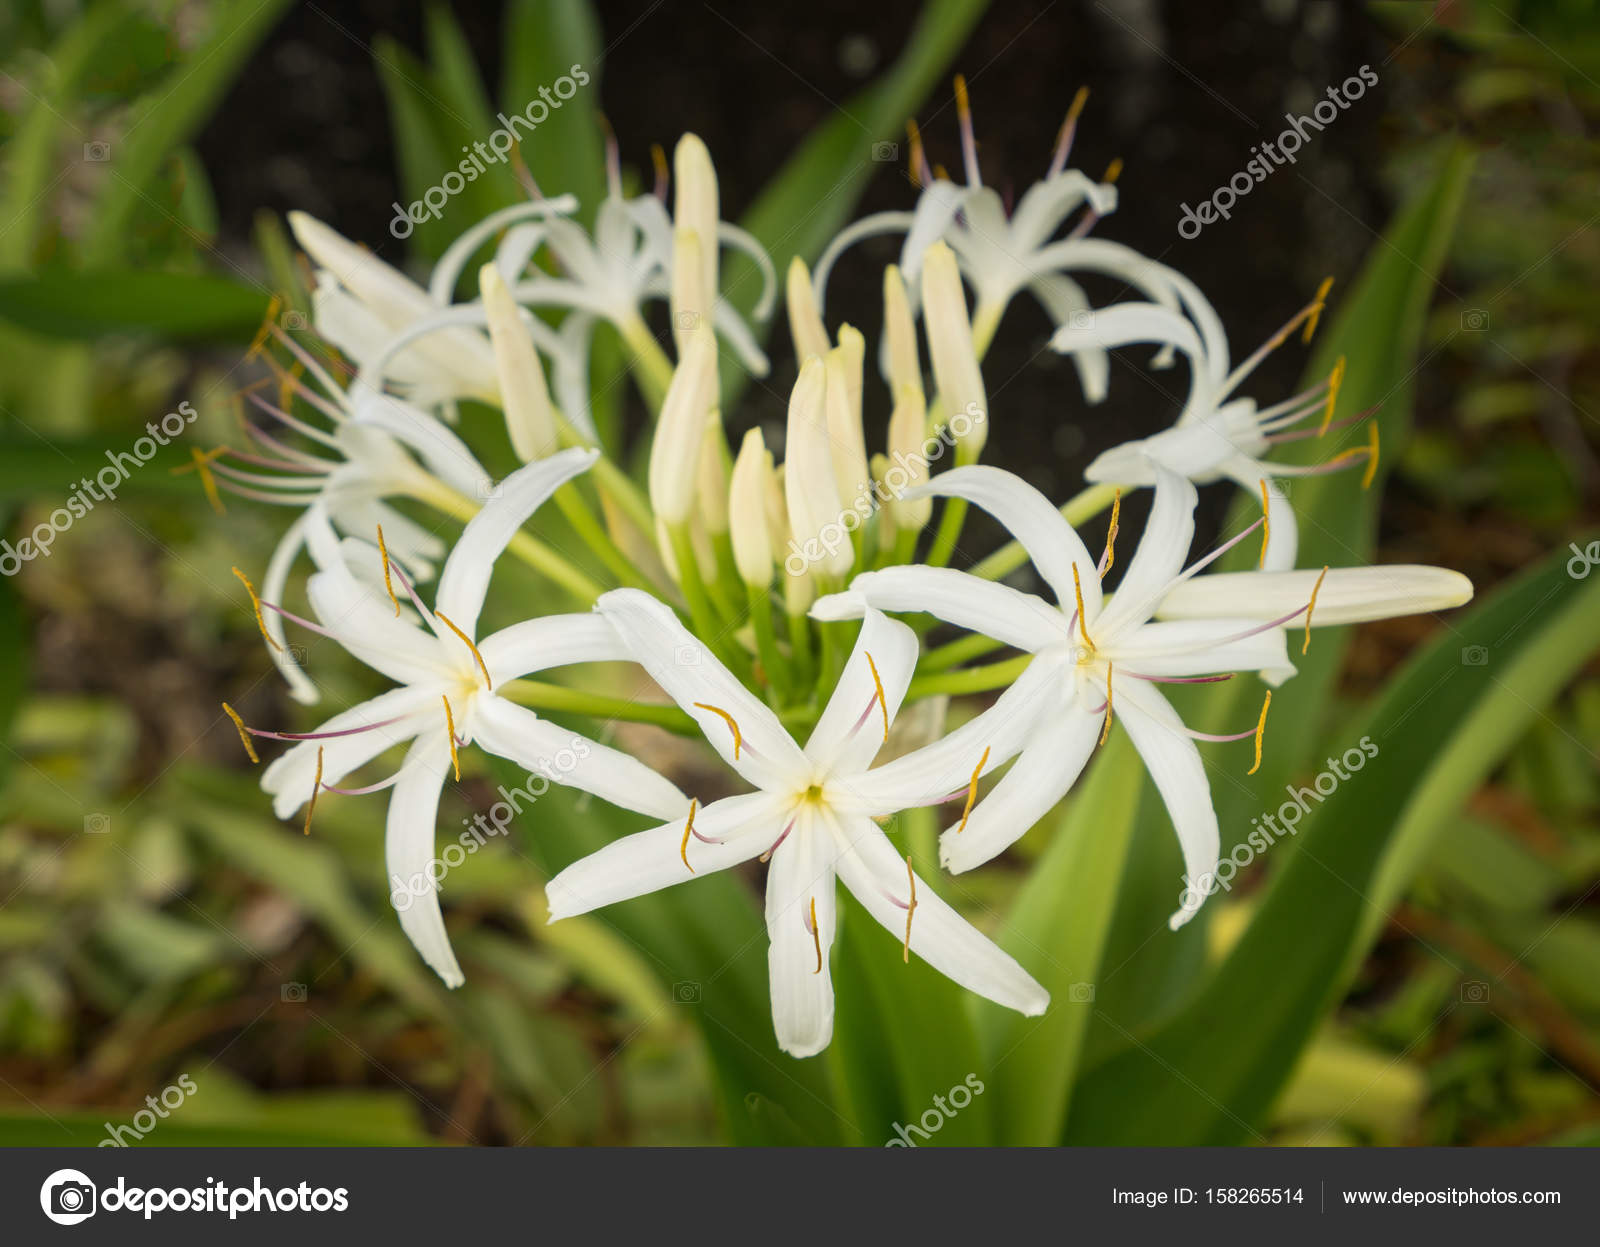 White Spider Lily Flower In Shade Of A Tree Stock Photo